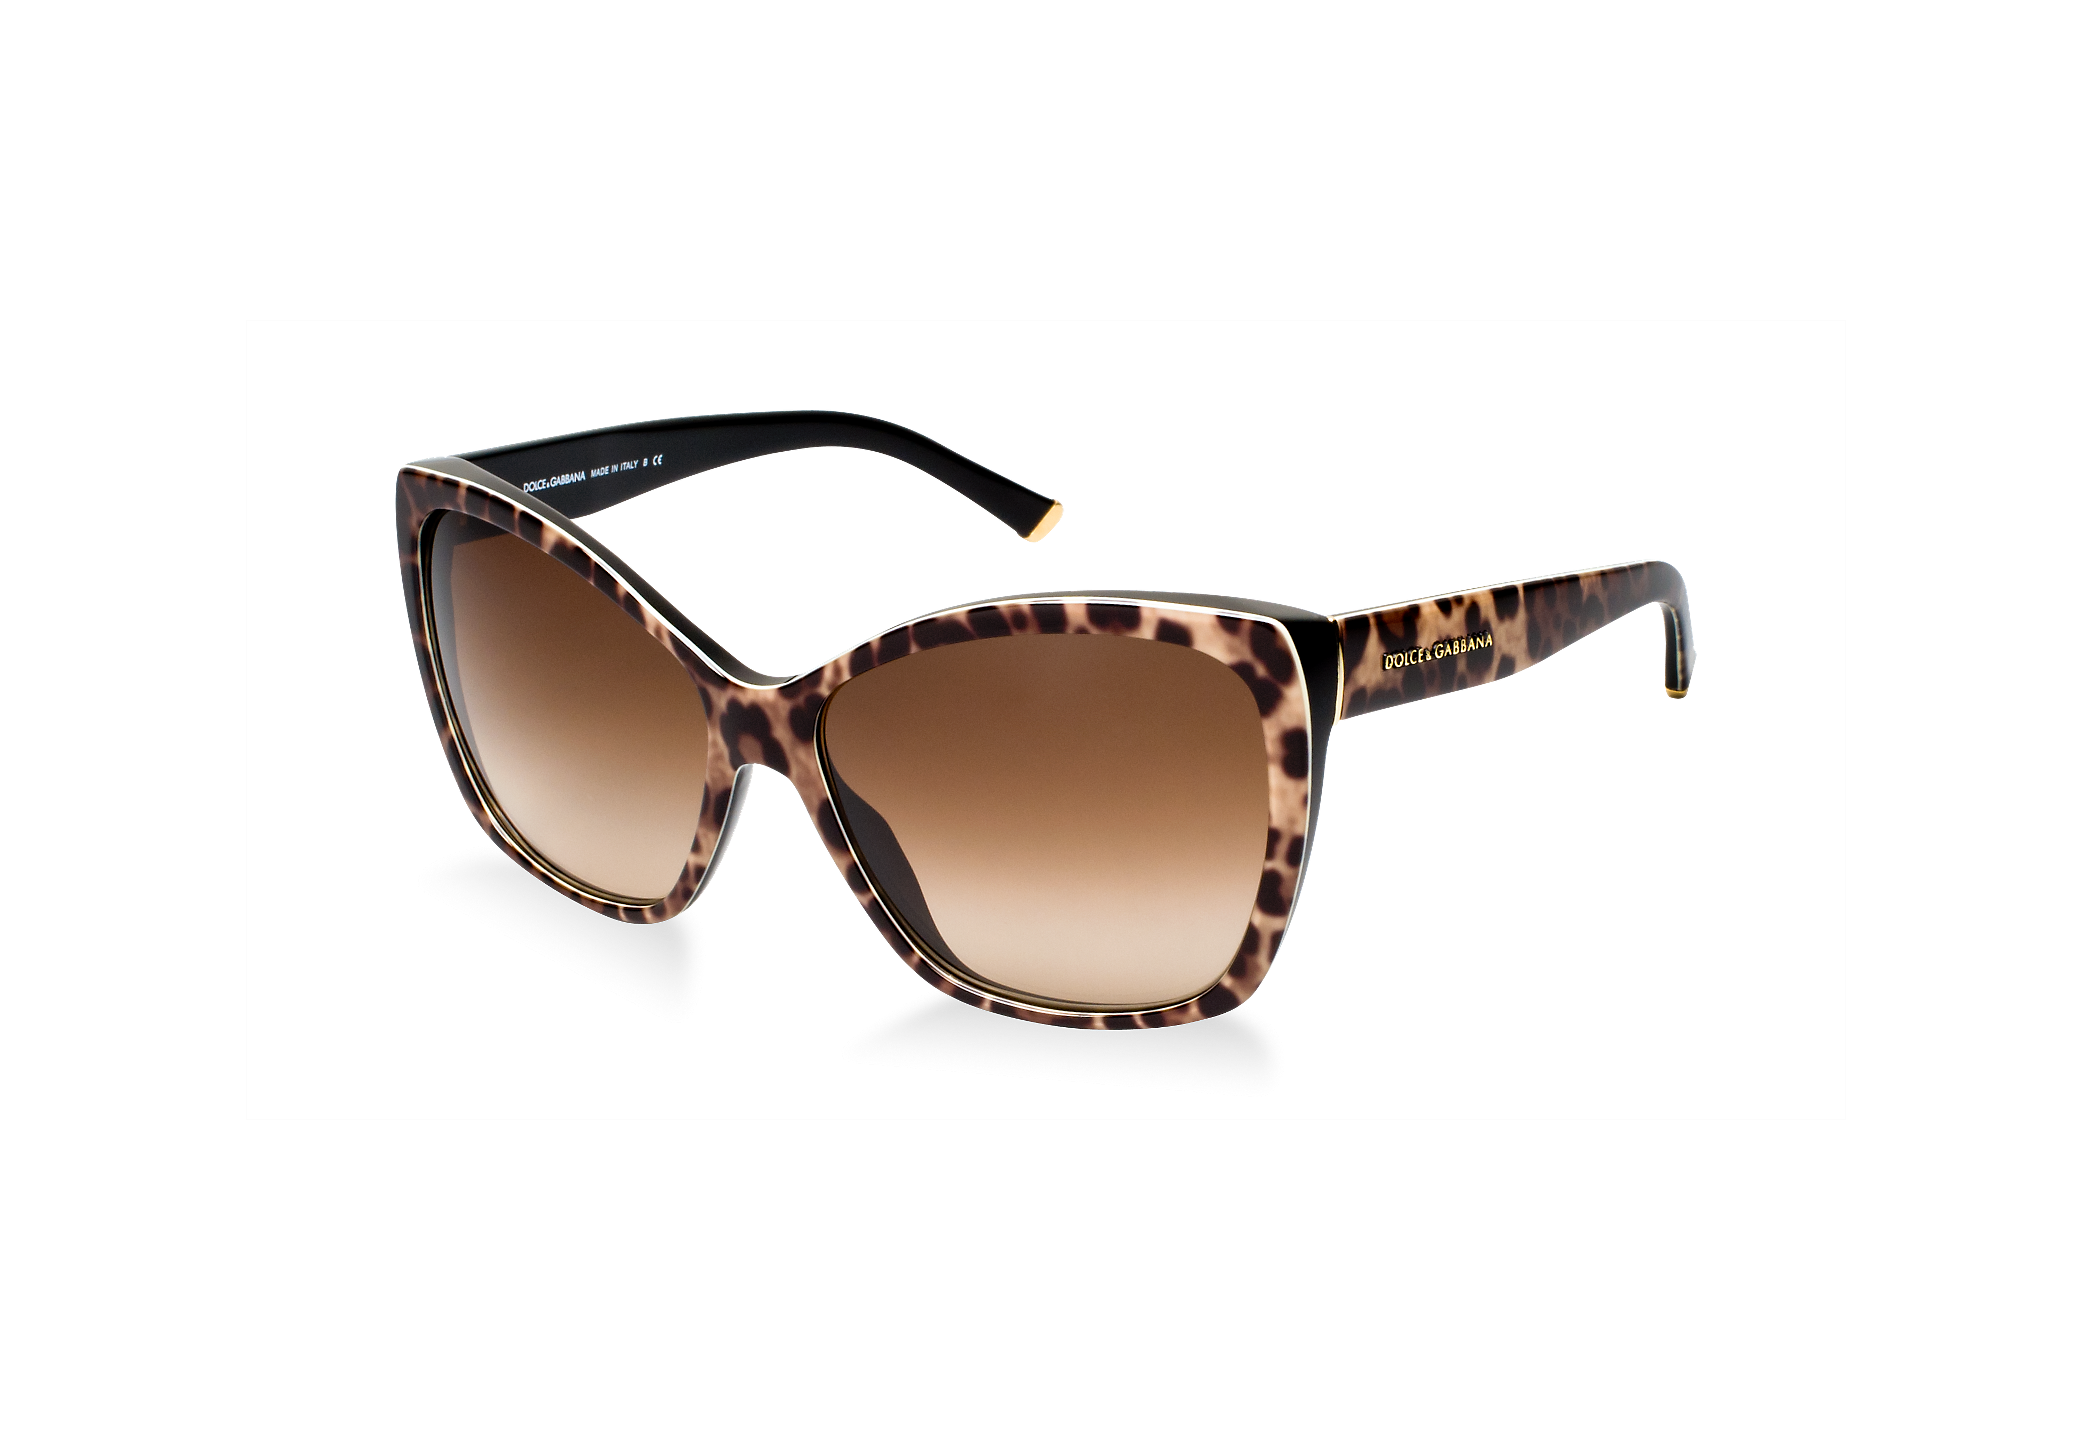 5680c9150d3 Sunglass Hut Up to 50% Off Sale - BuyVia